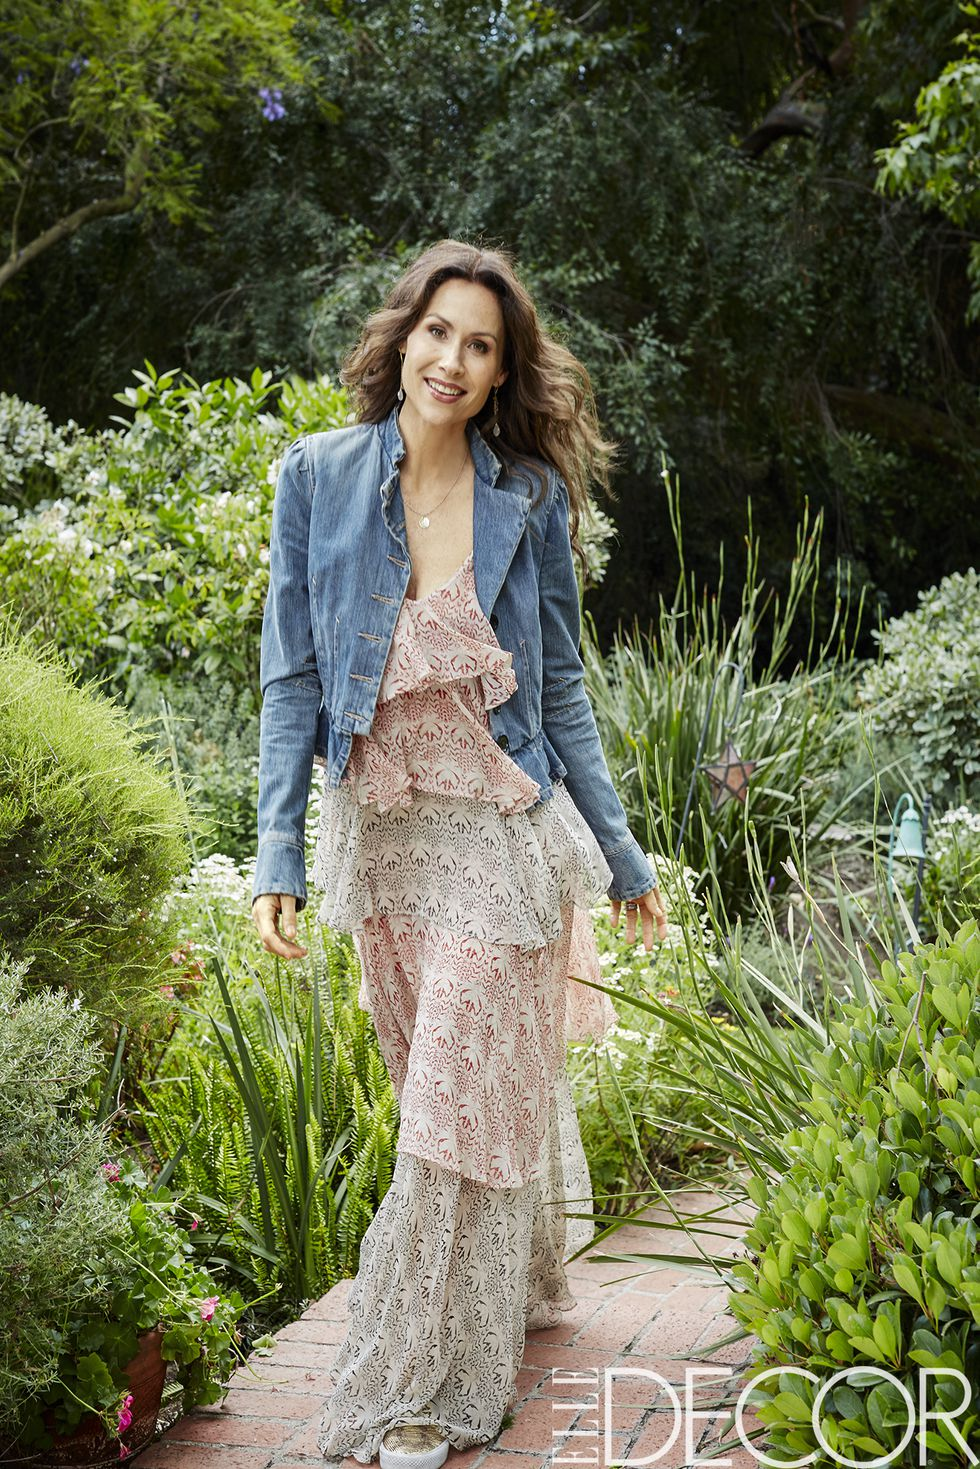 Minnie Driver in the garden of her home in Los Angeles, a 1940s ranch housedecorated by    Peter Dunham   .